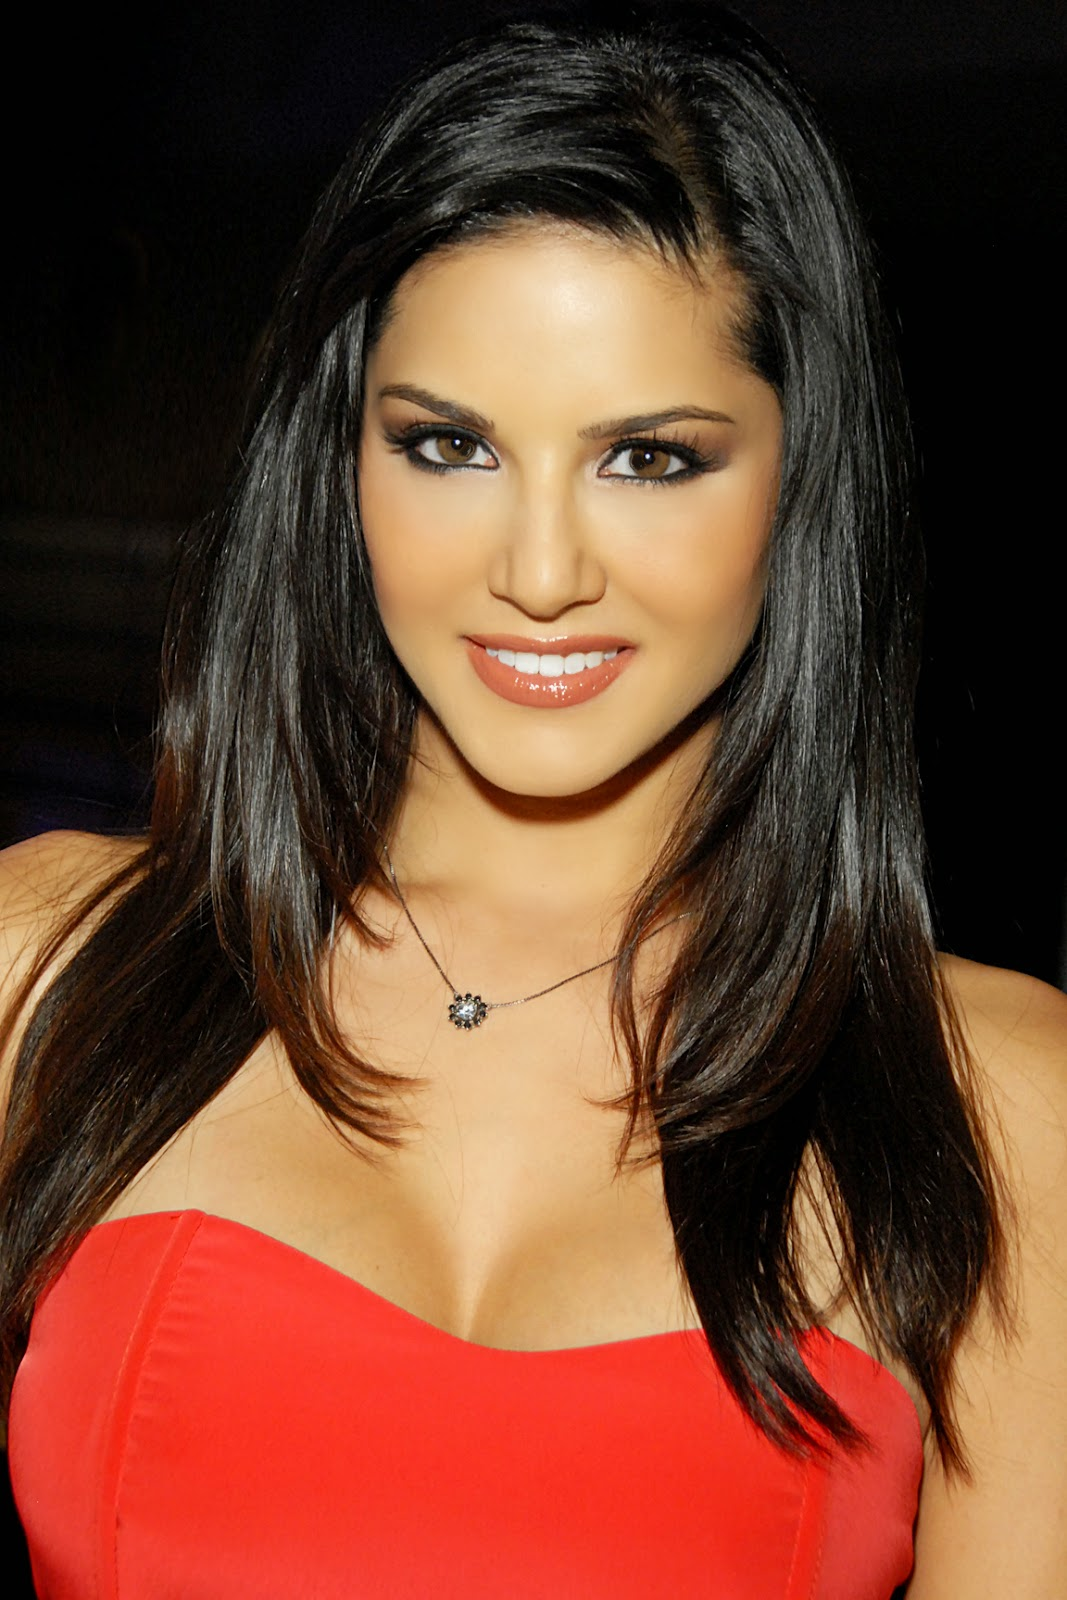 Sunny Leone Hd Wallpapers Exclusive Collections Hd Hot -4676